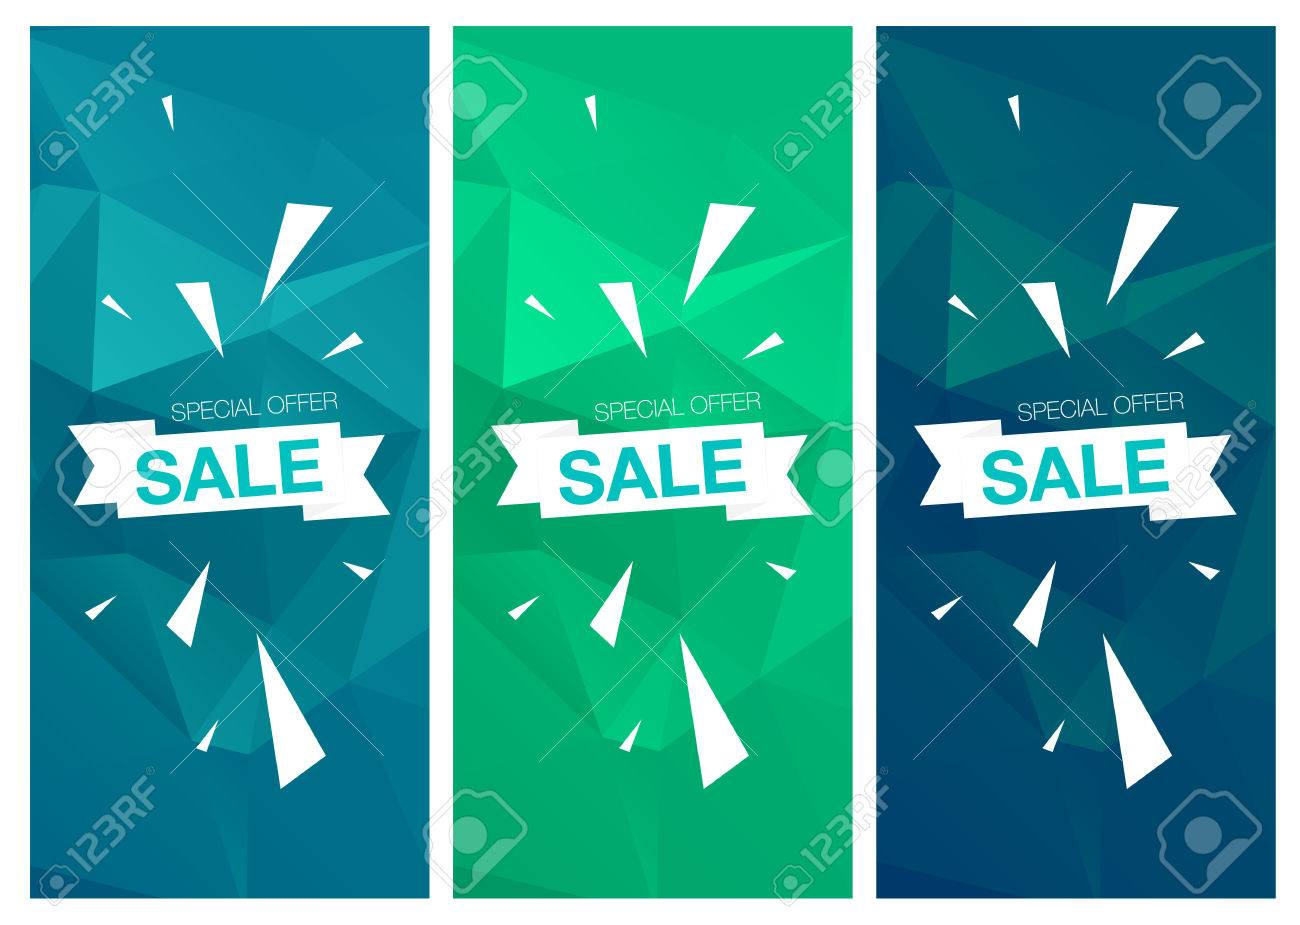 super special offer web banner templates on colored super special offer web banner templates on colored background stock vector 53082697